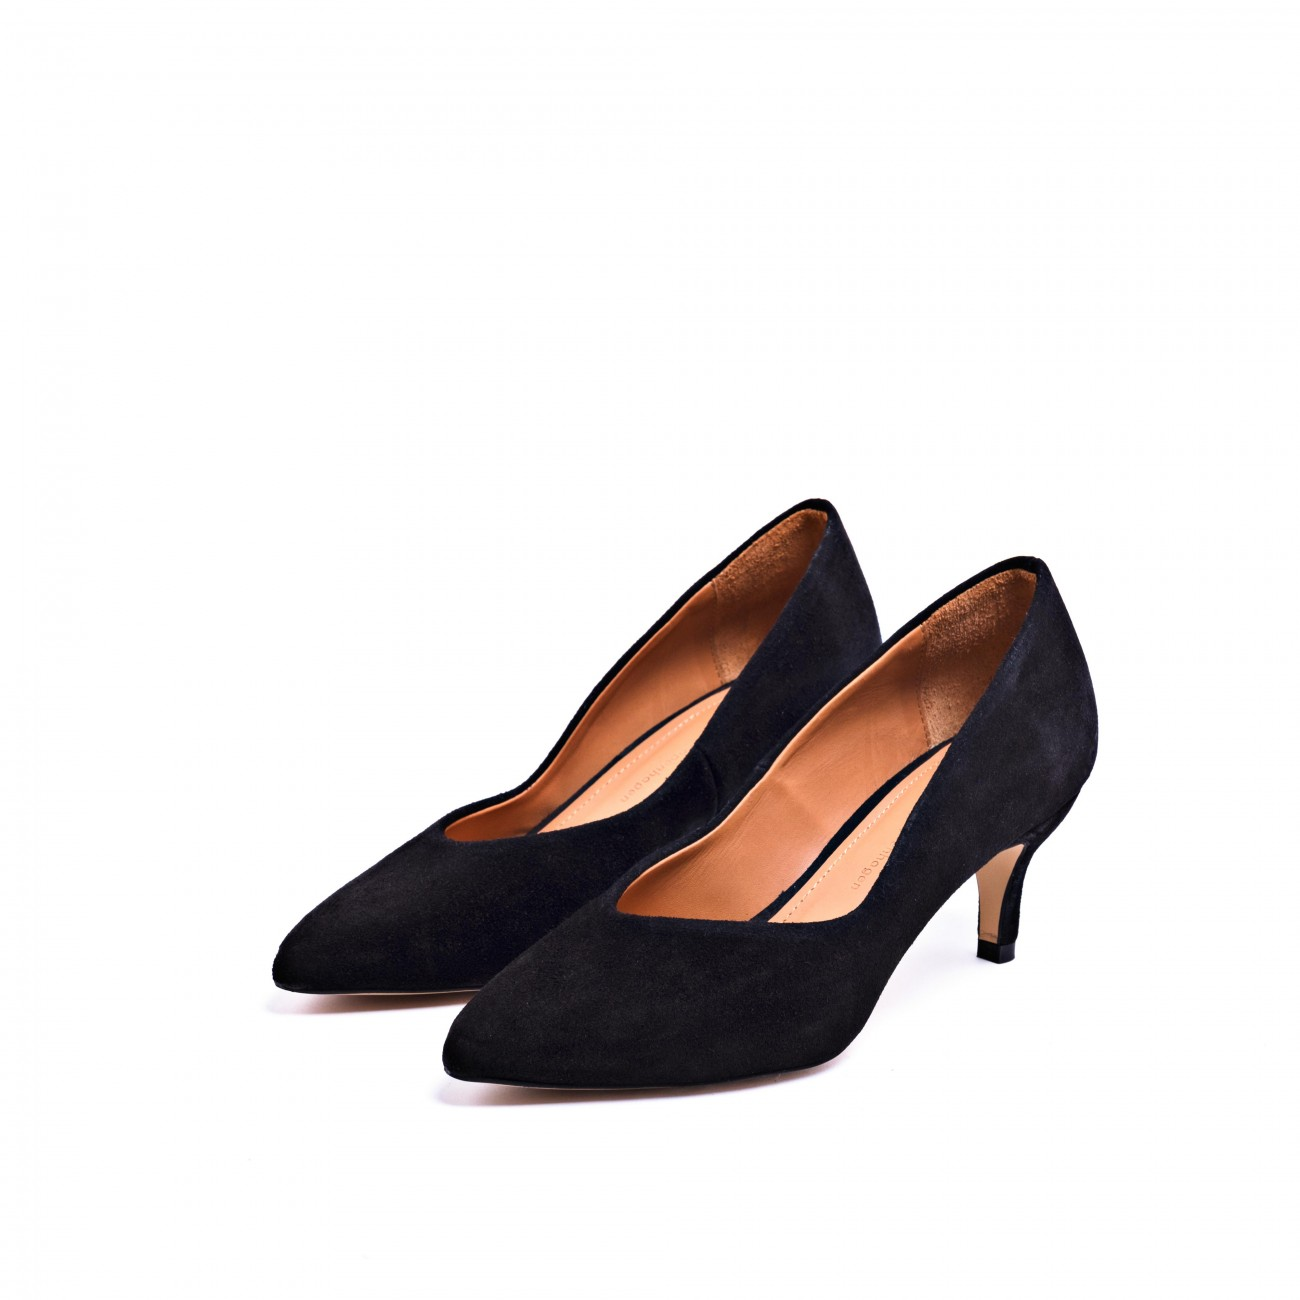 Villa Black Suede Pump